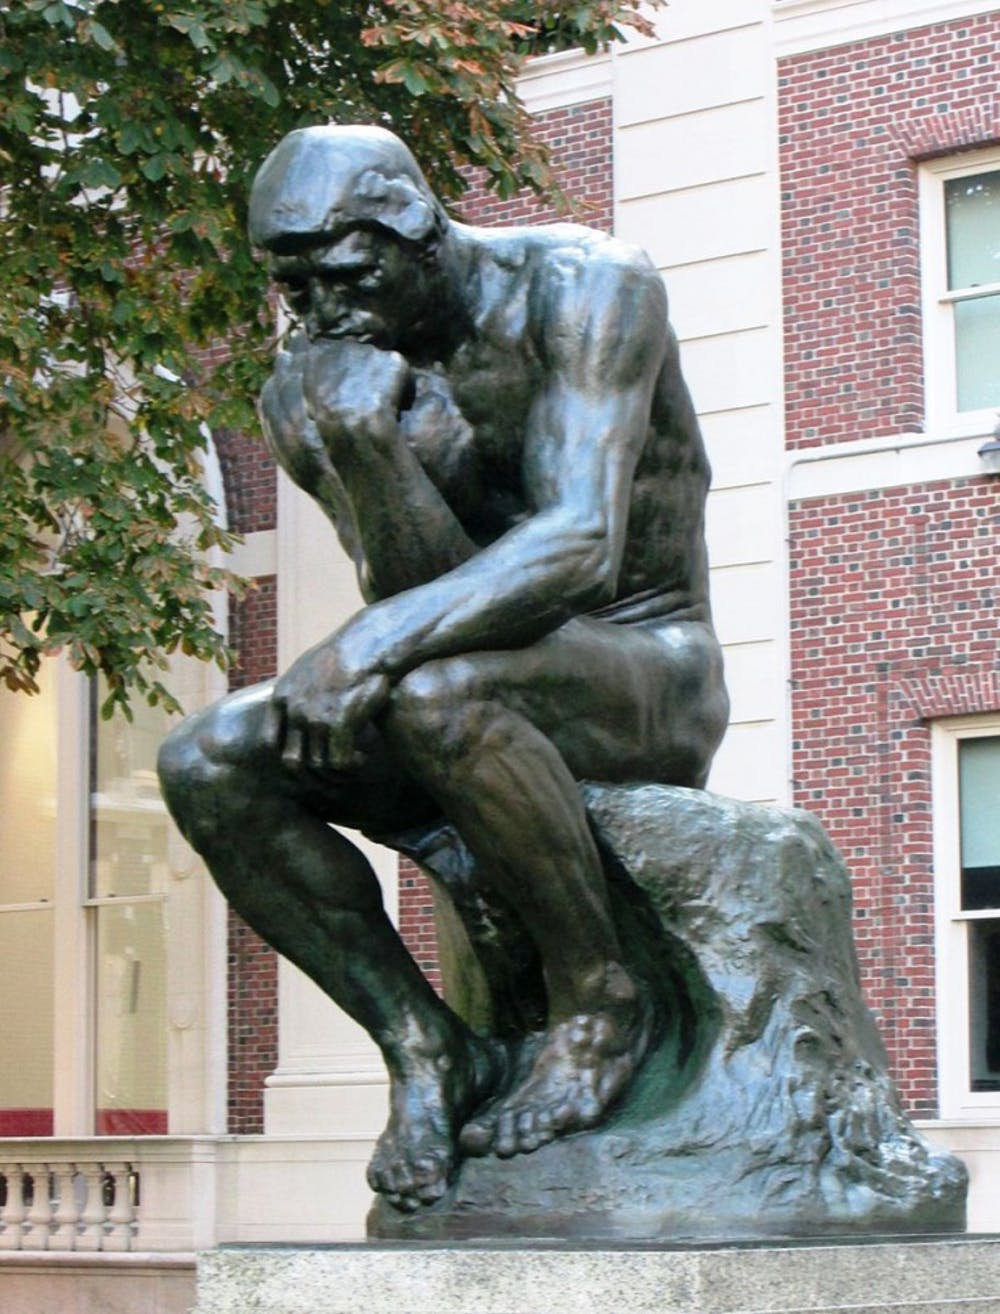 912px-2014-columbia-university-the-thinker